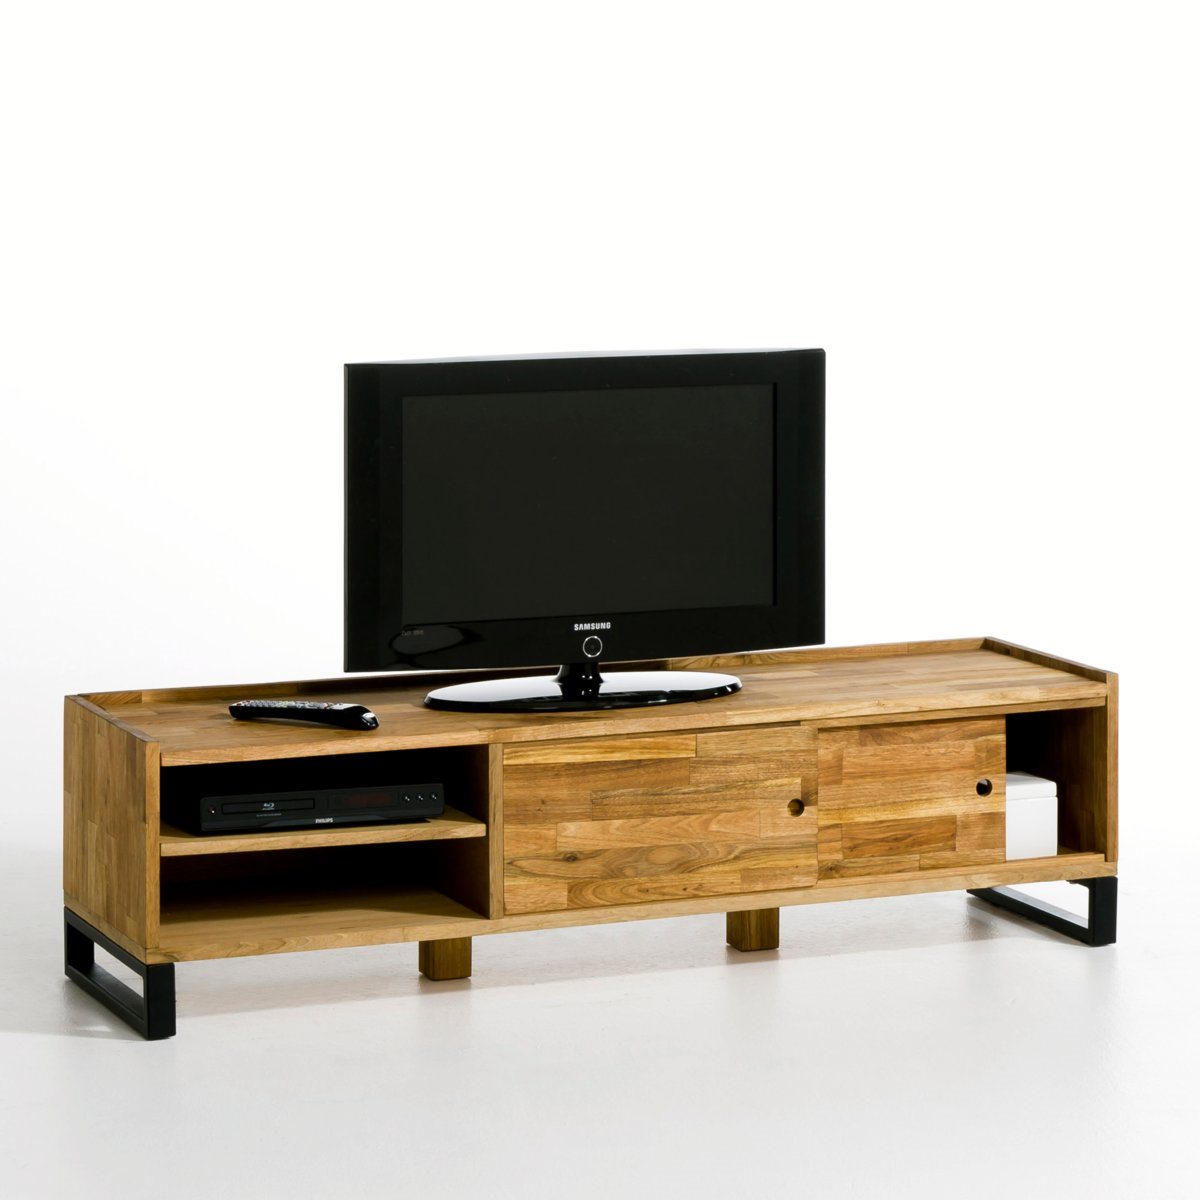 Clinwood Tv sehpası 160 cm